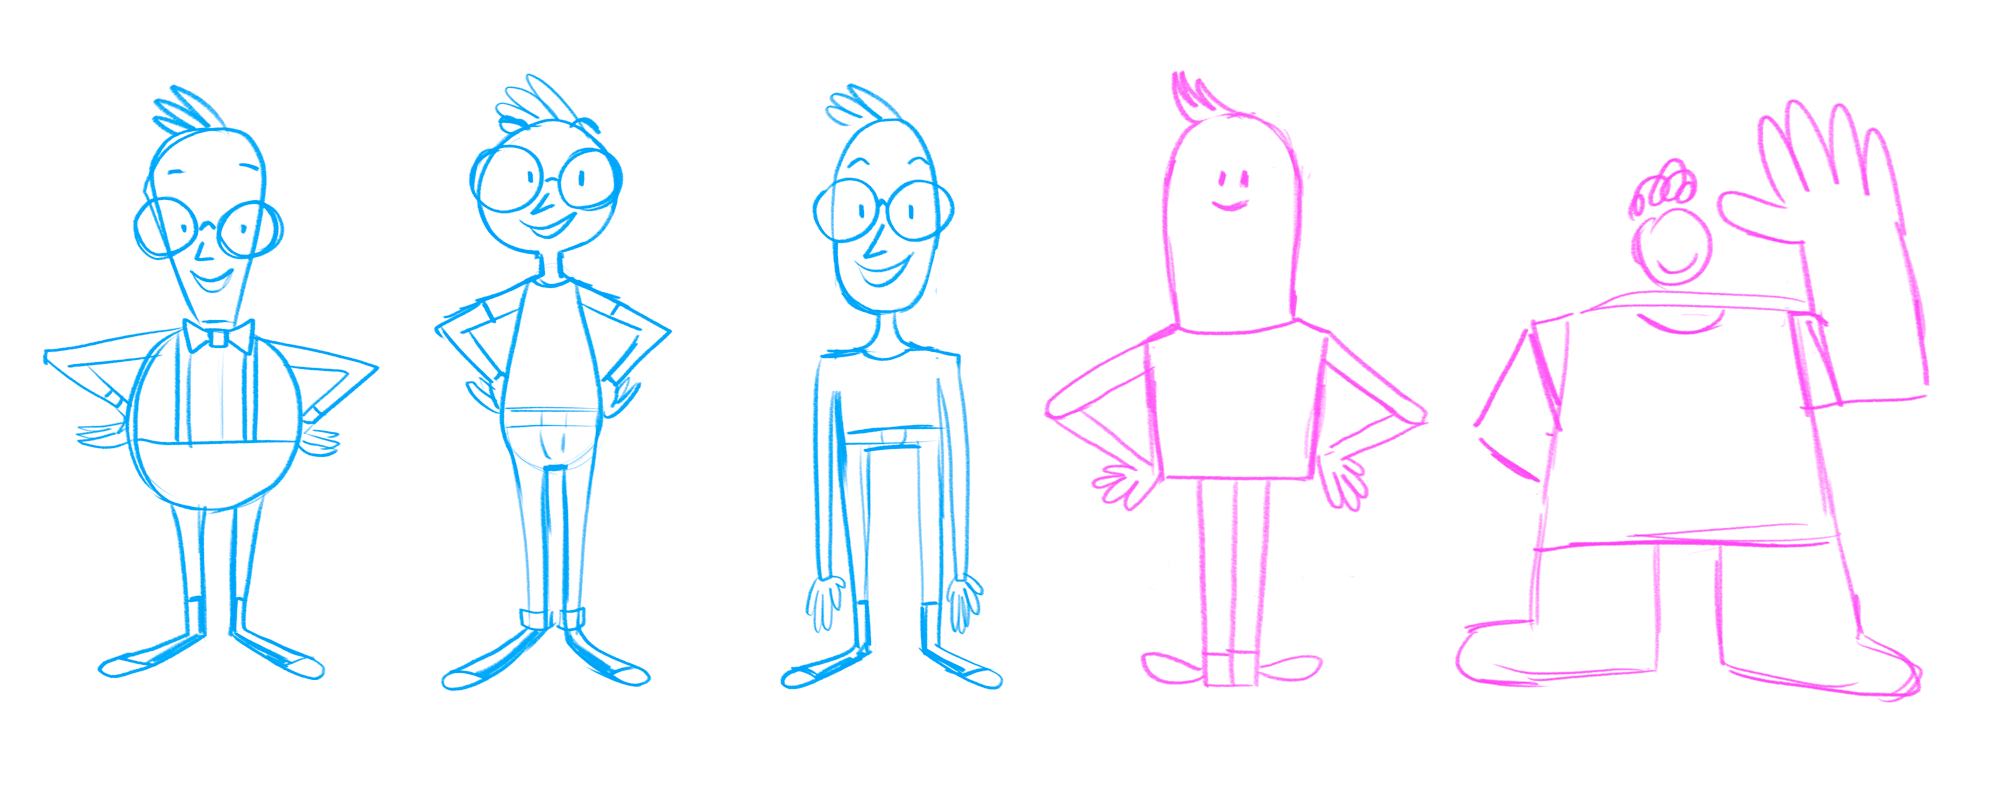 altone_character_sketches